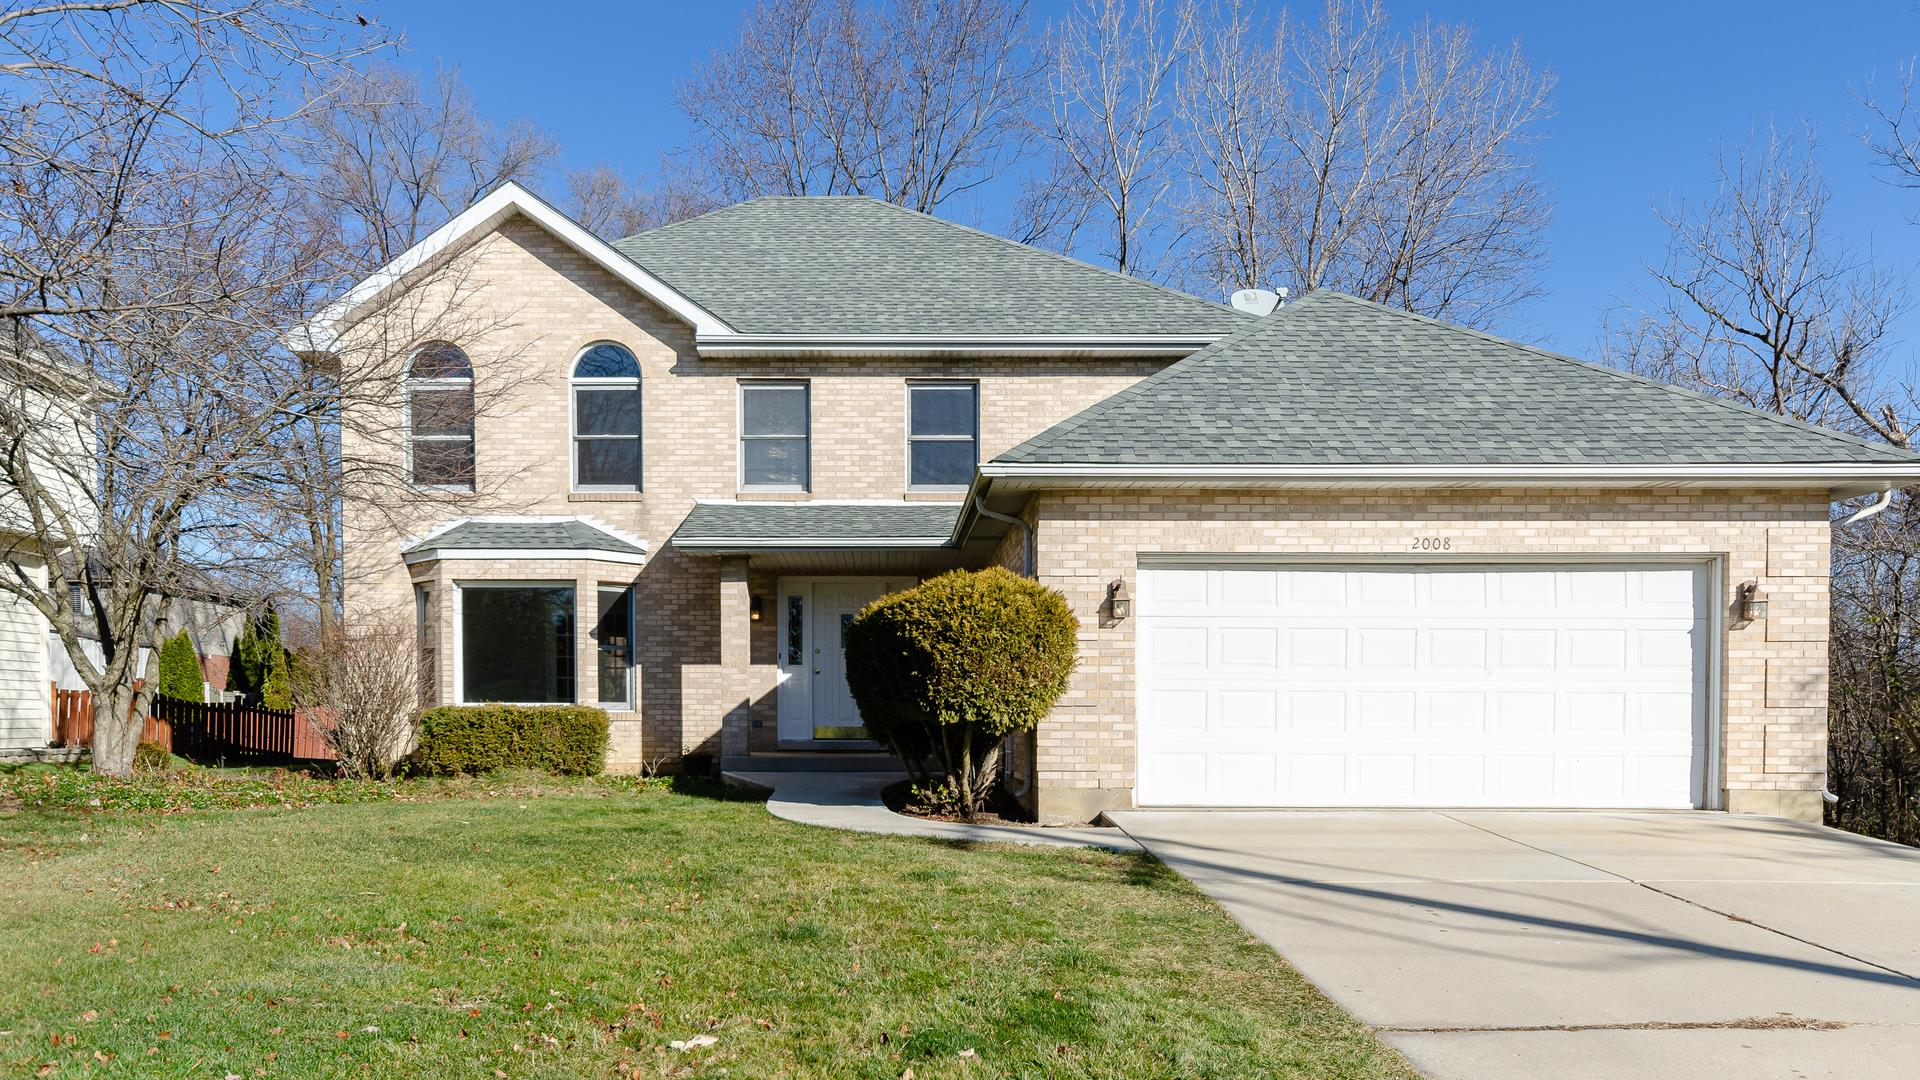 2008 oldfield Road, Darien, IL 60561 - #: 10951657